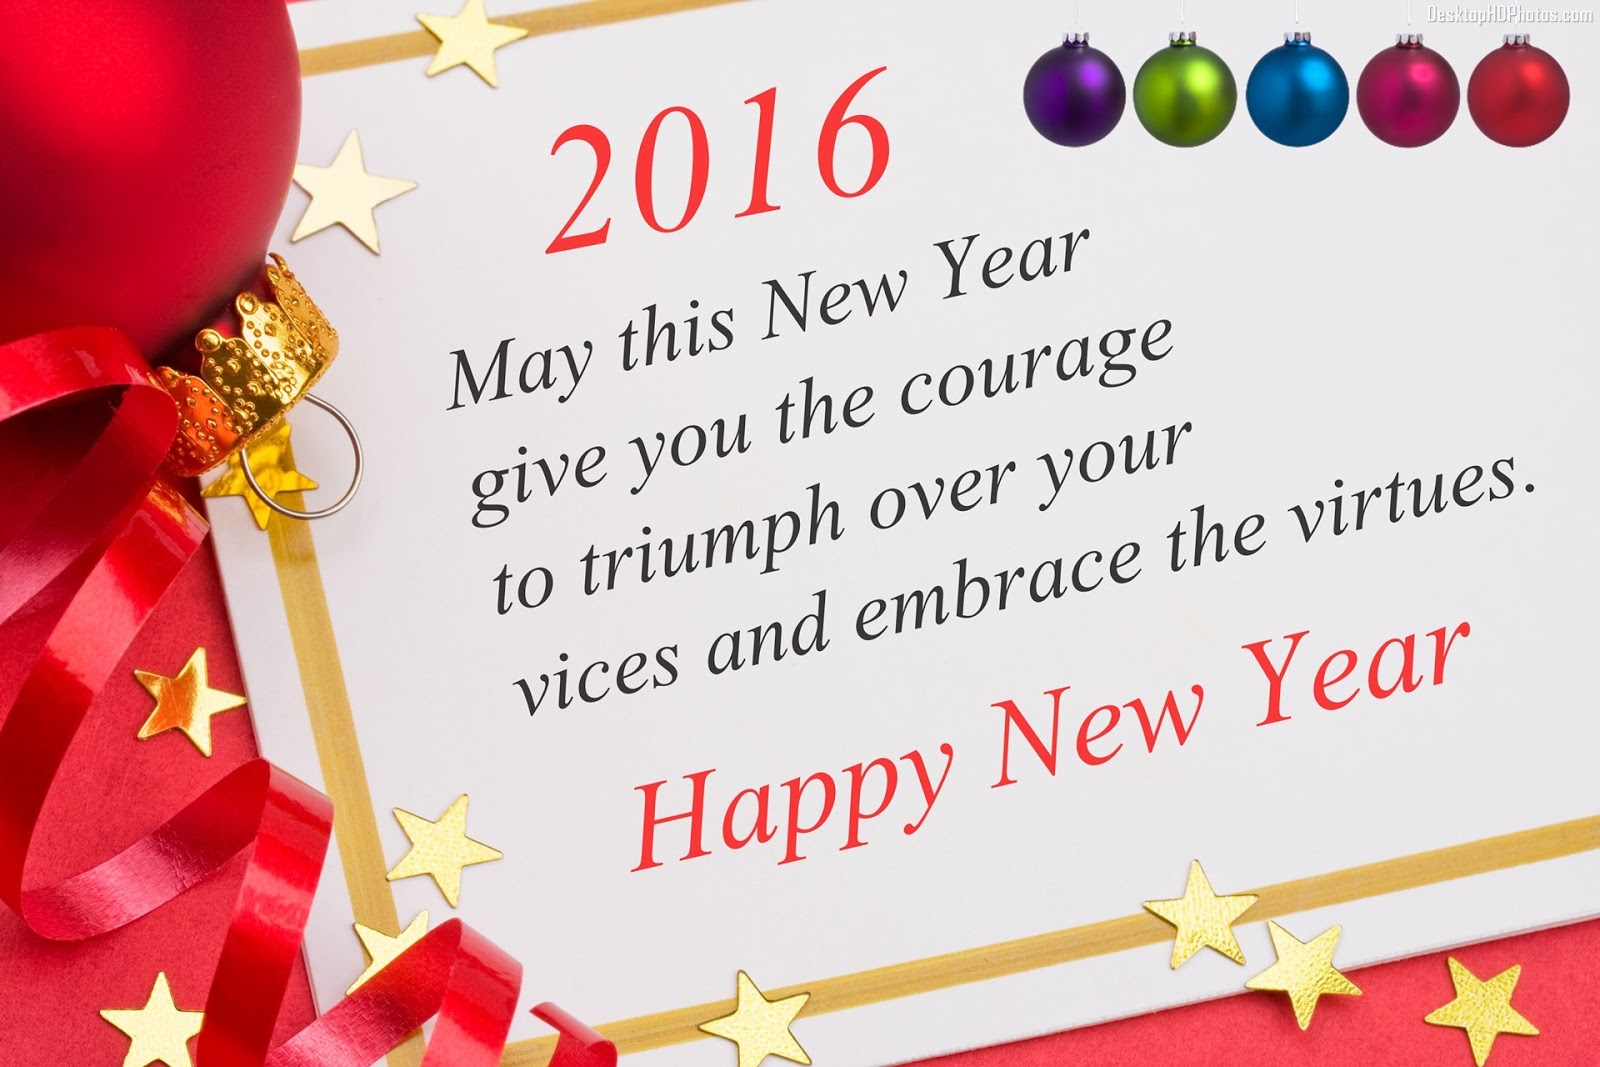 Happy New Year Quotes 2016 In English Happy New Year 2017